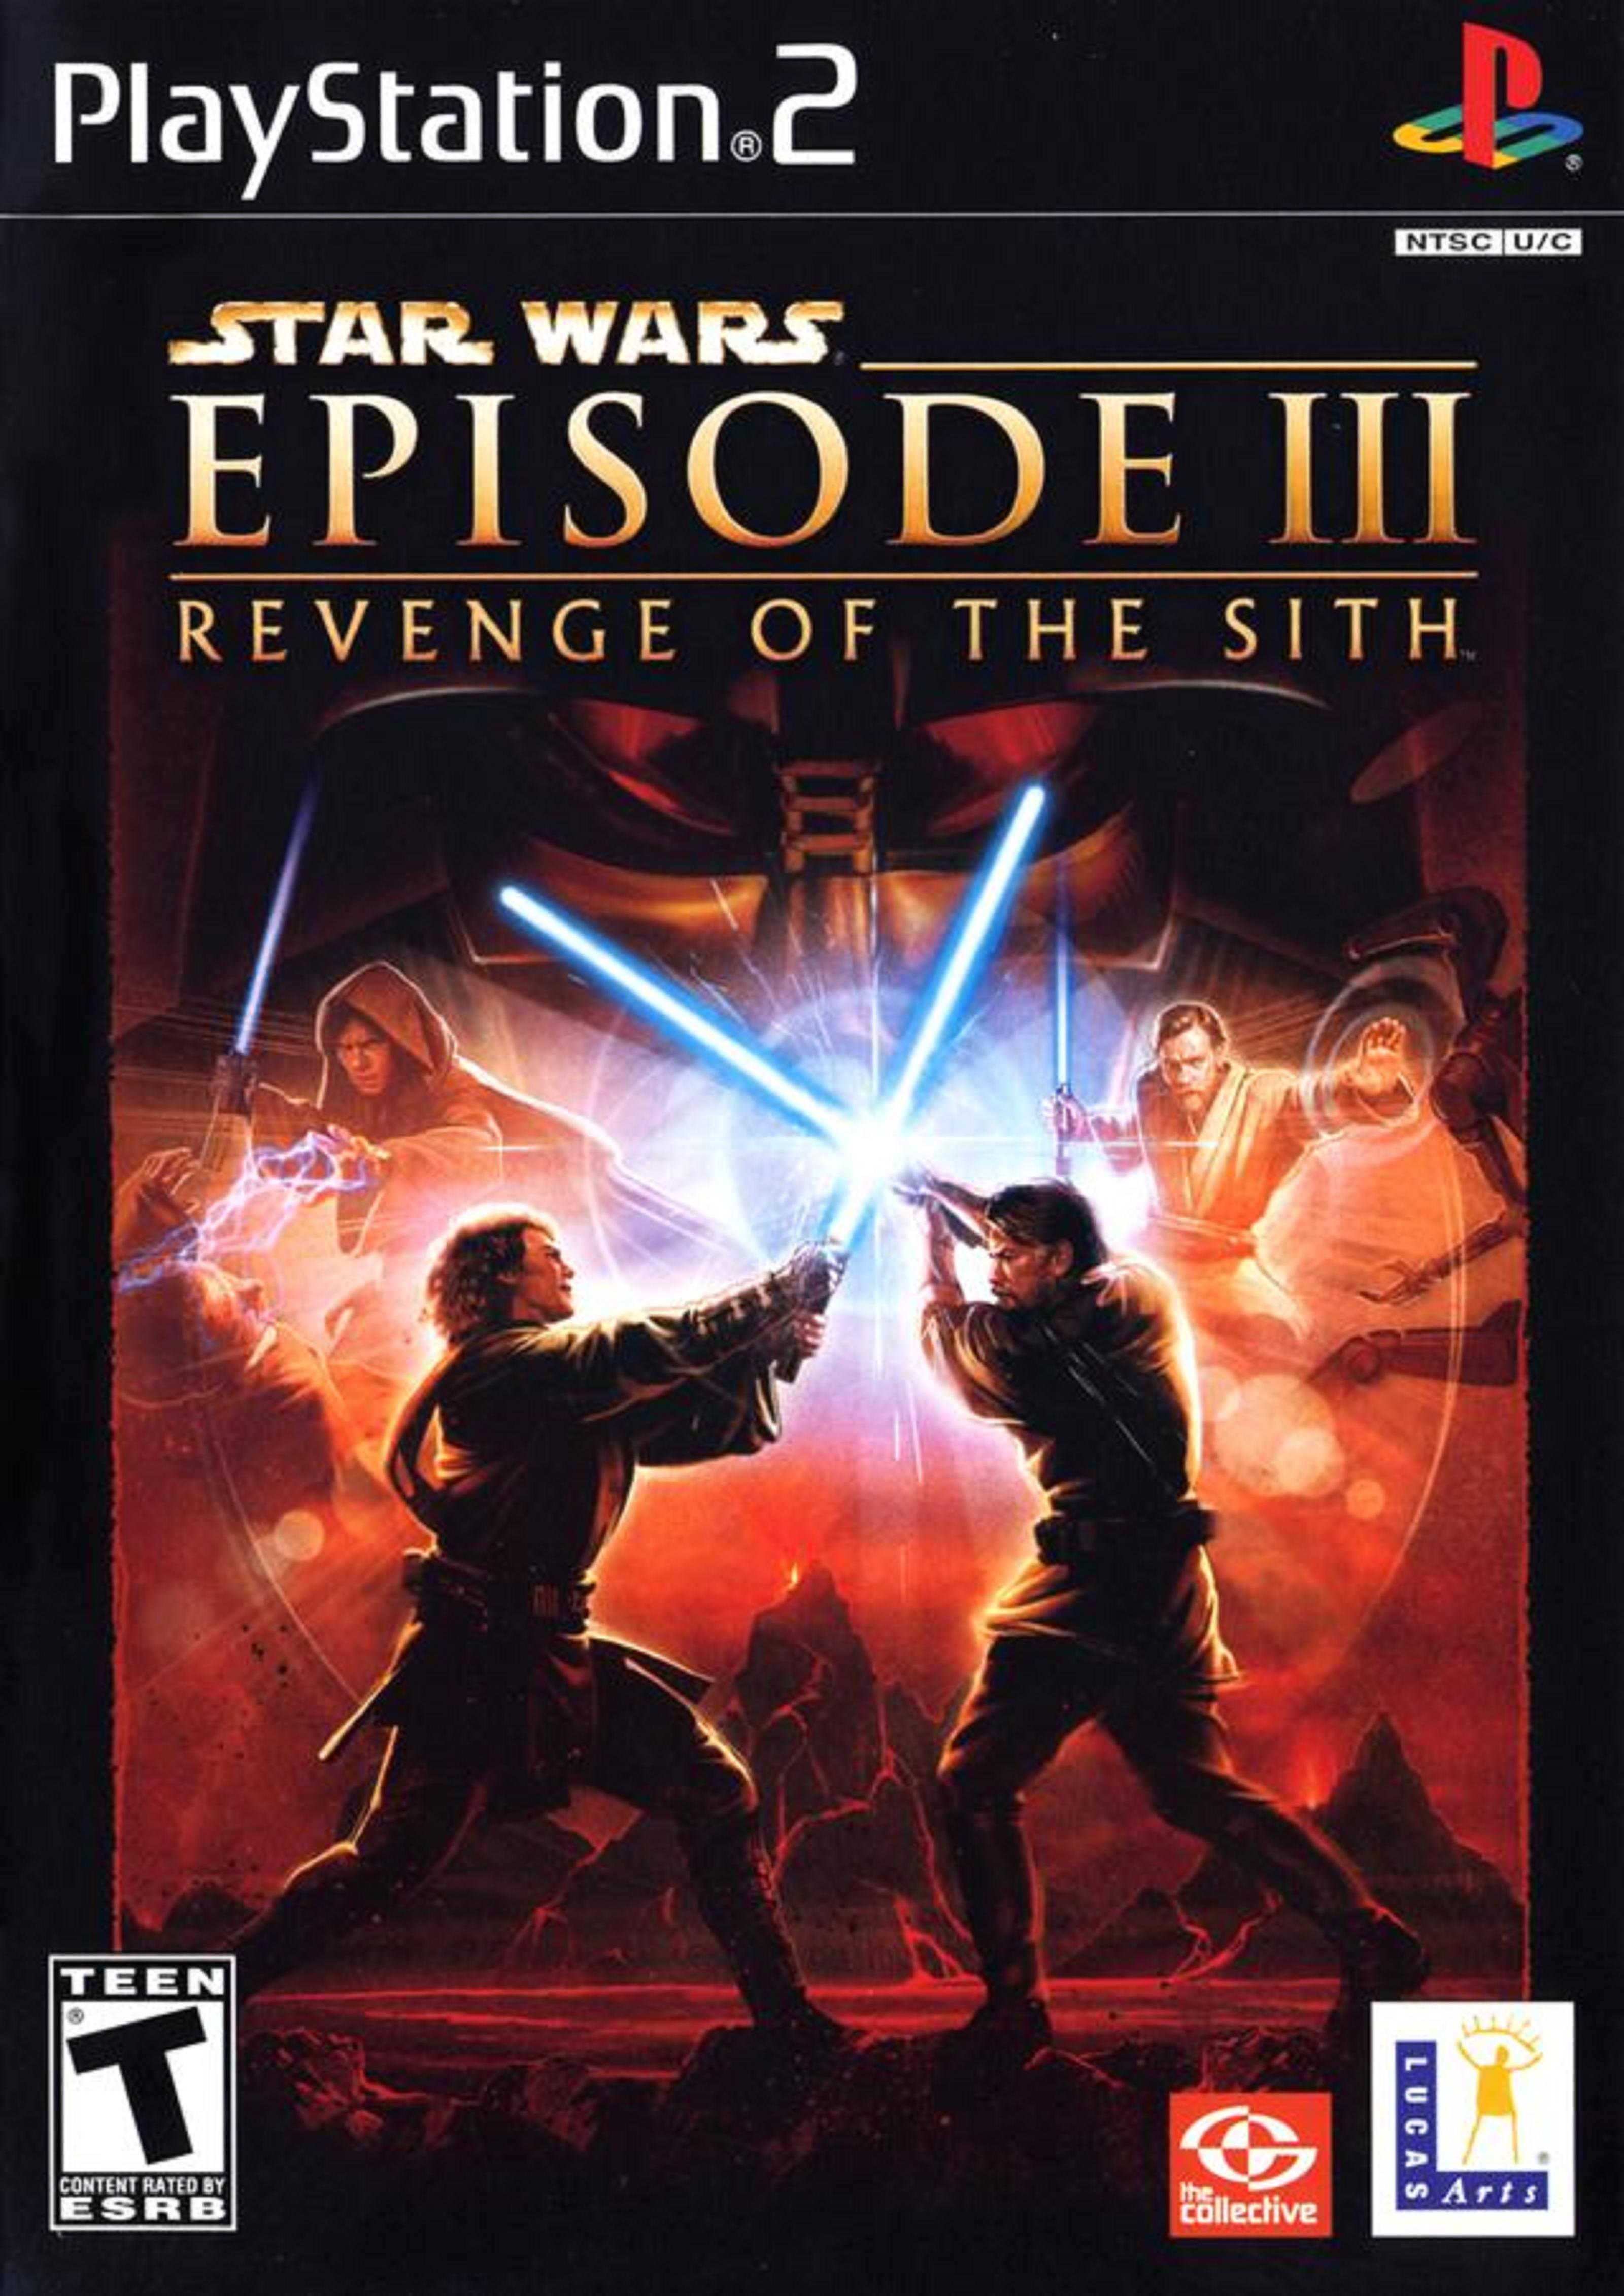 Star Wars Episode Iii Revenge Of The Sith Video Game 2005 Imdb